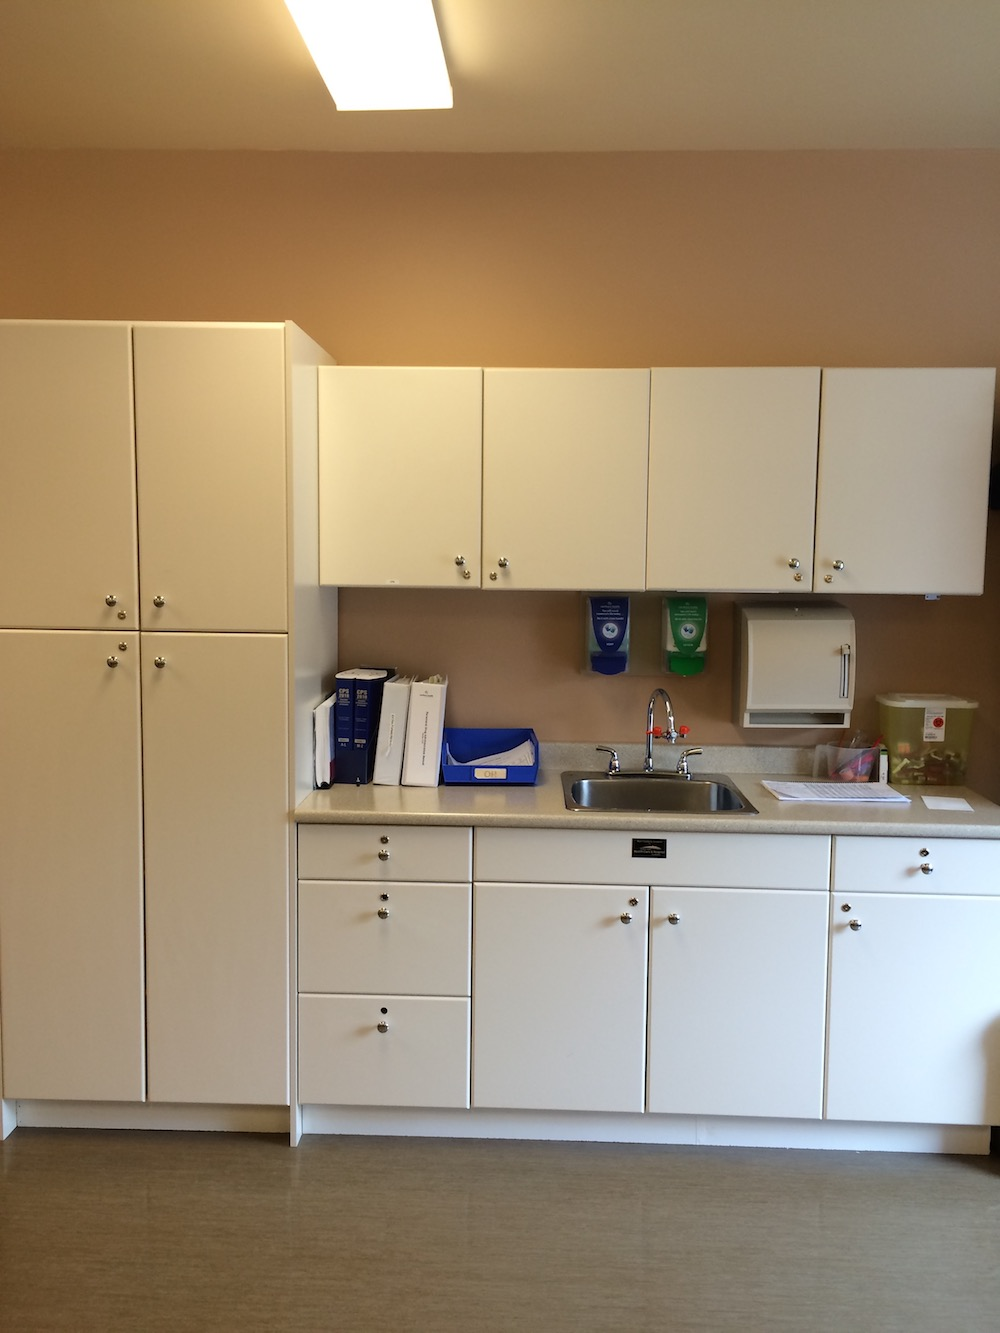 Post Anaesthetic Cupboards